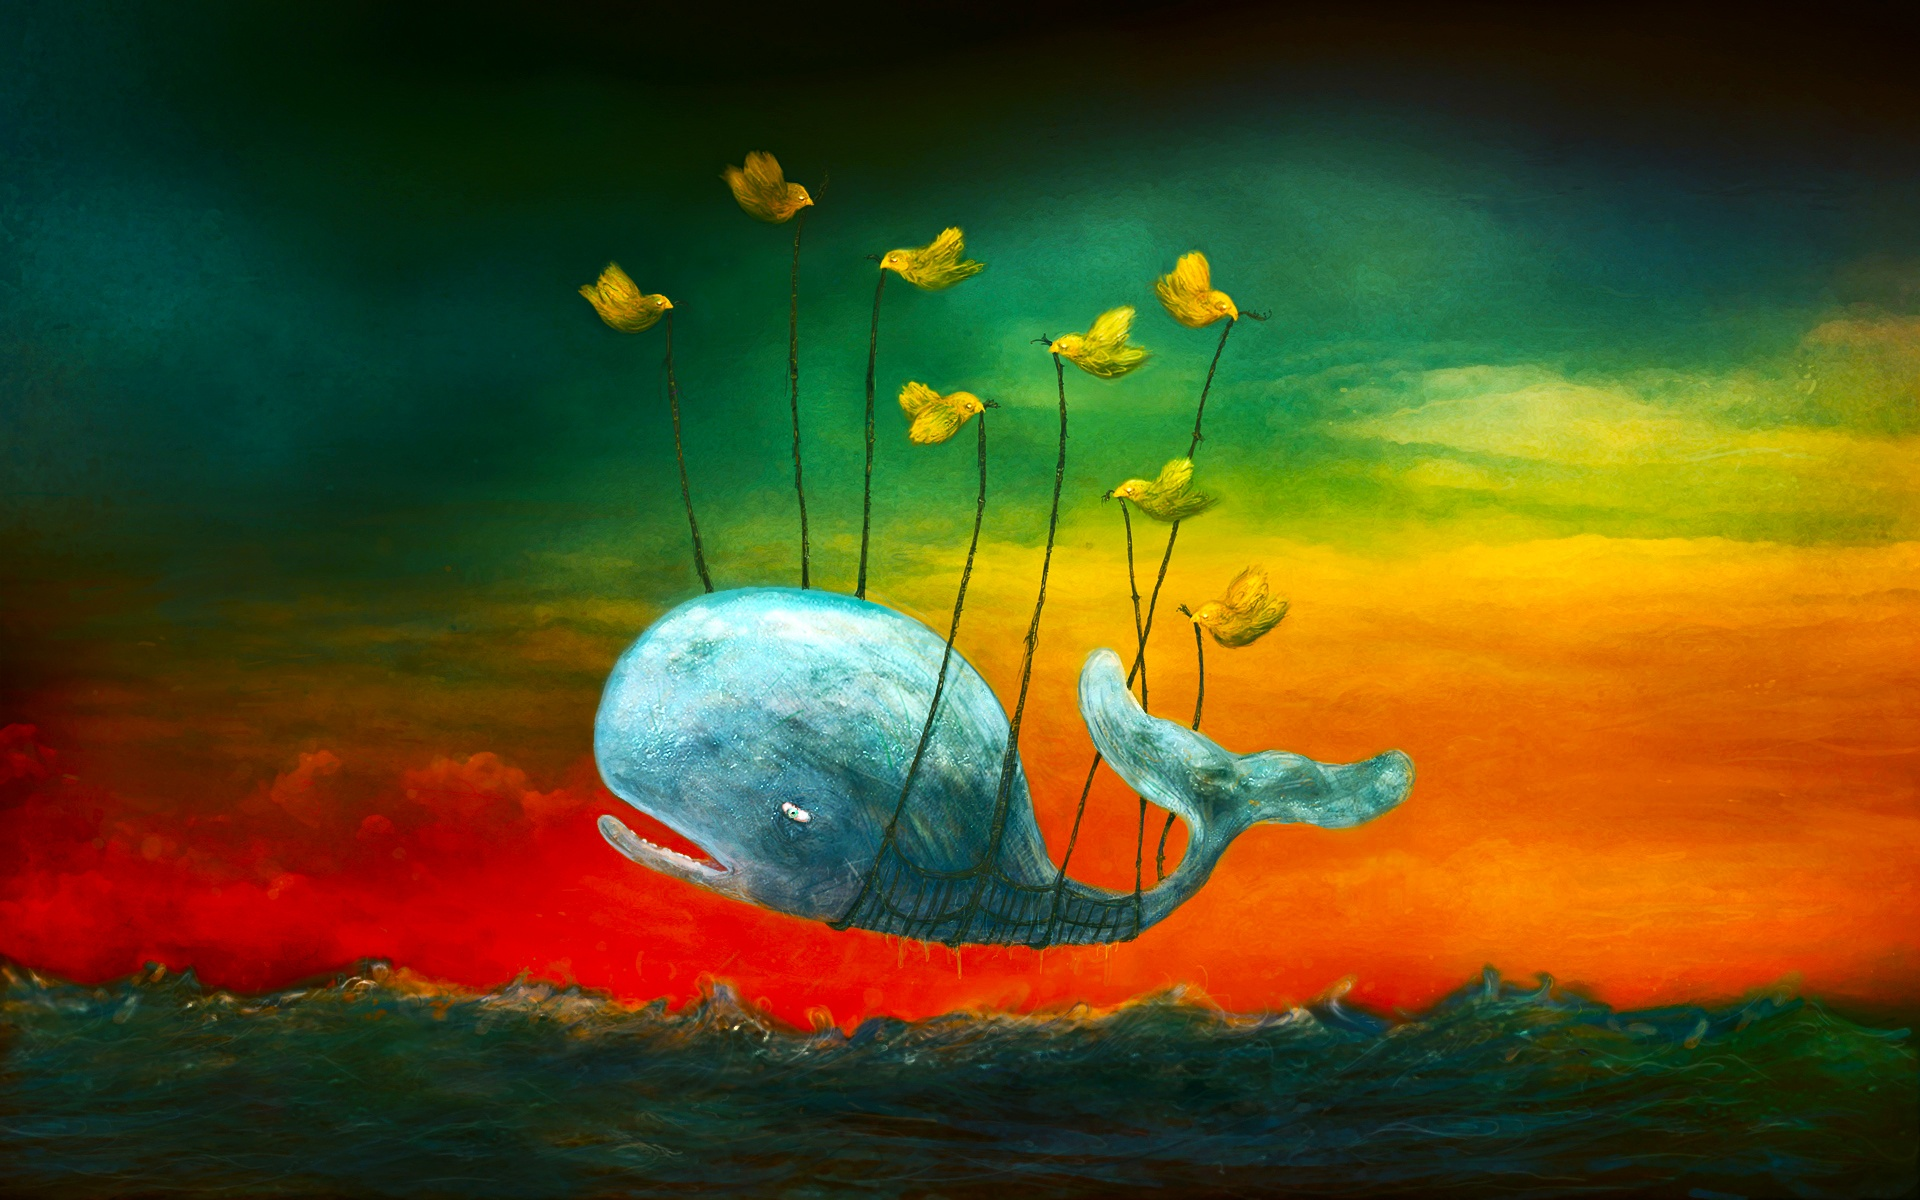 Artistic Pictures Wallpapers 32 Wallpapers Adorable Wallpapers